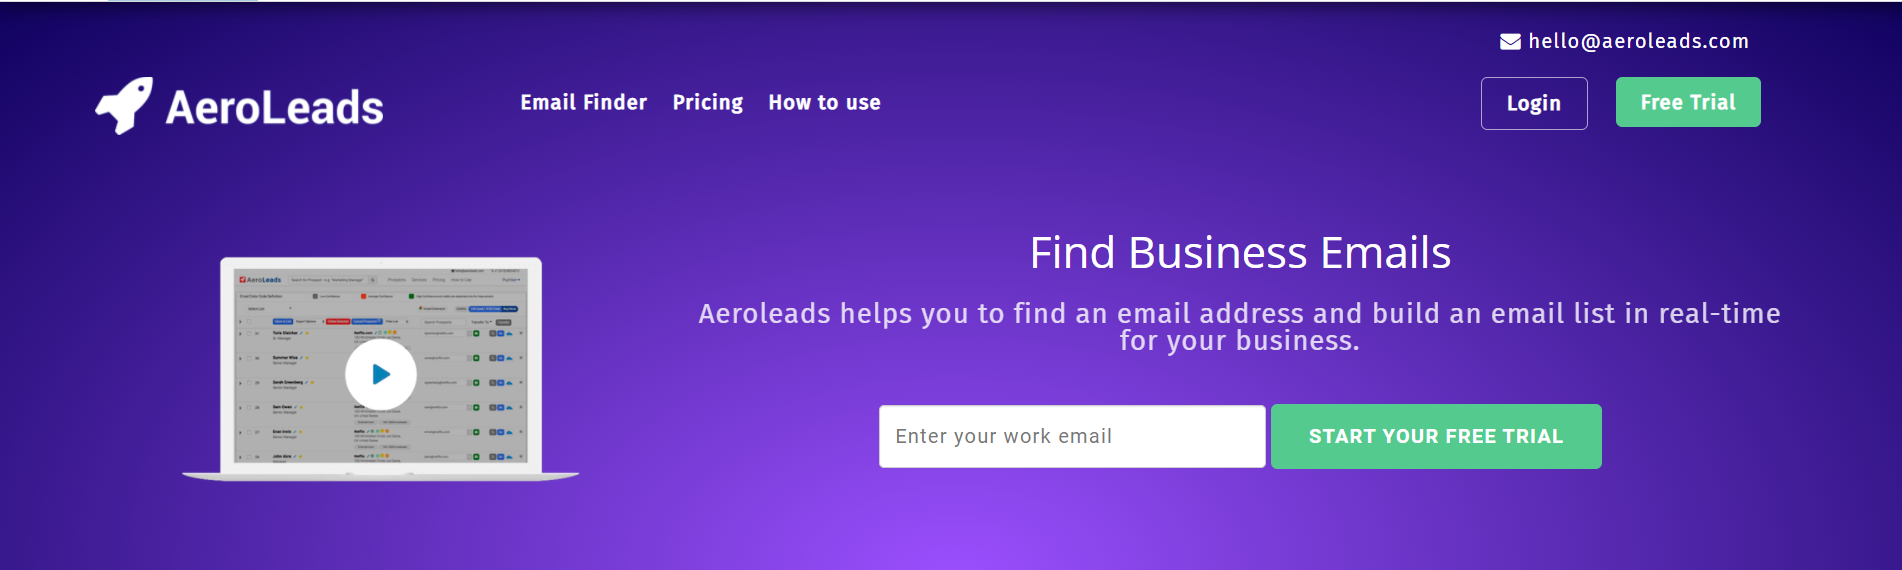 Aeroleads Email Finder Tool for Cold Calling